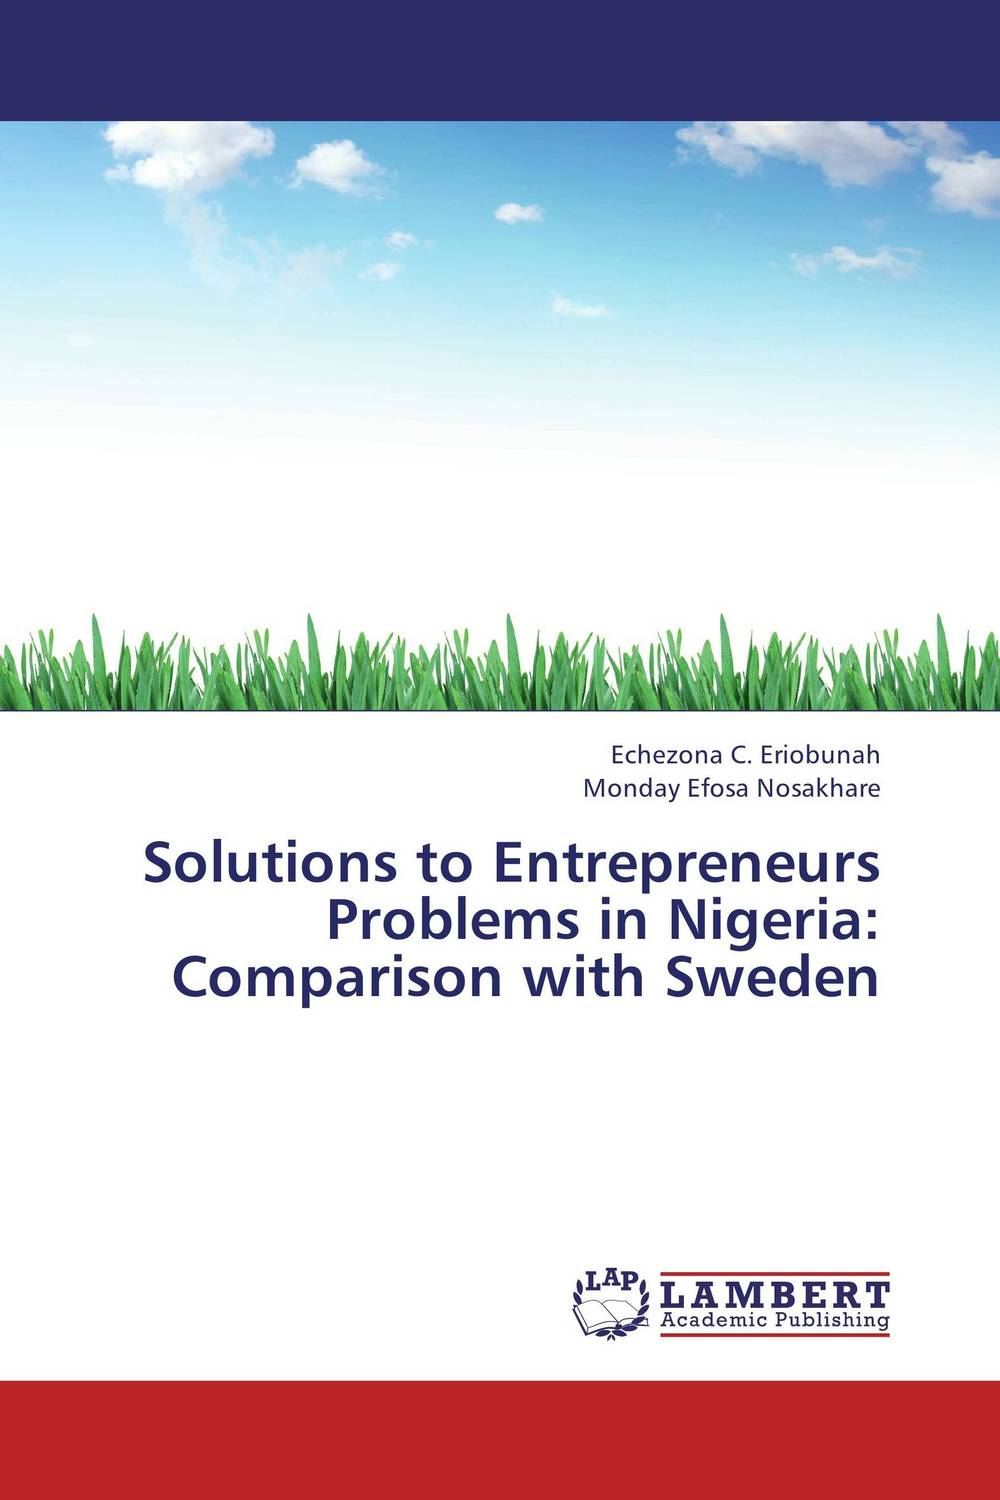 Solutions to Entrepreneurs Problems in Nigeria: Comparison with Sweden marc lane j the mission driven venture business solutions to the world s most vexing social problems